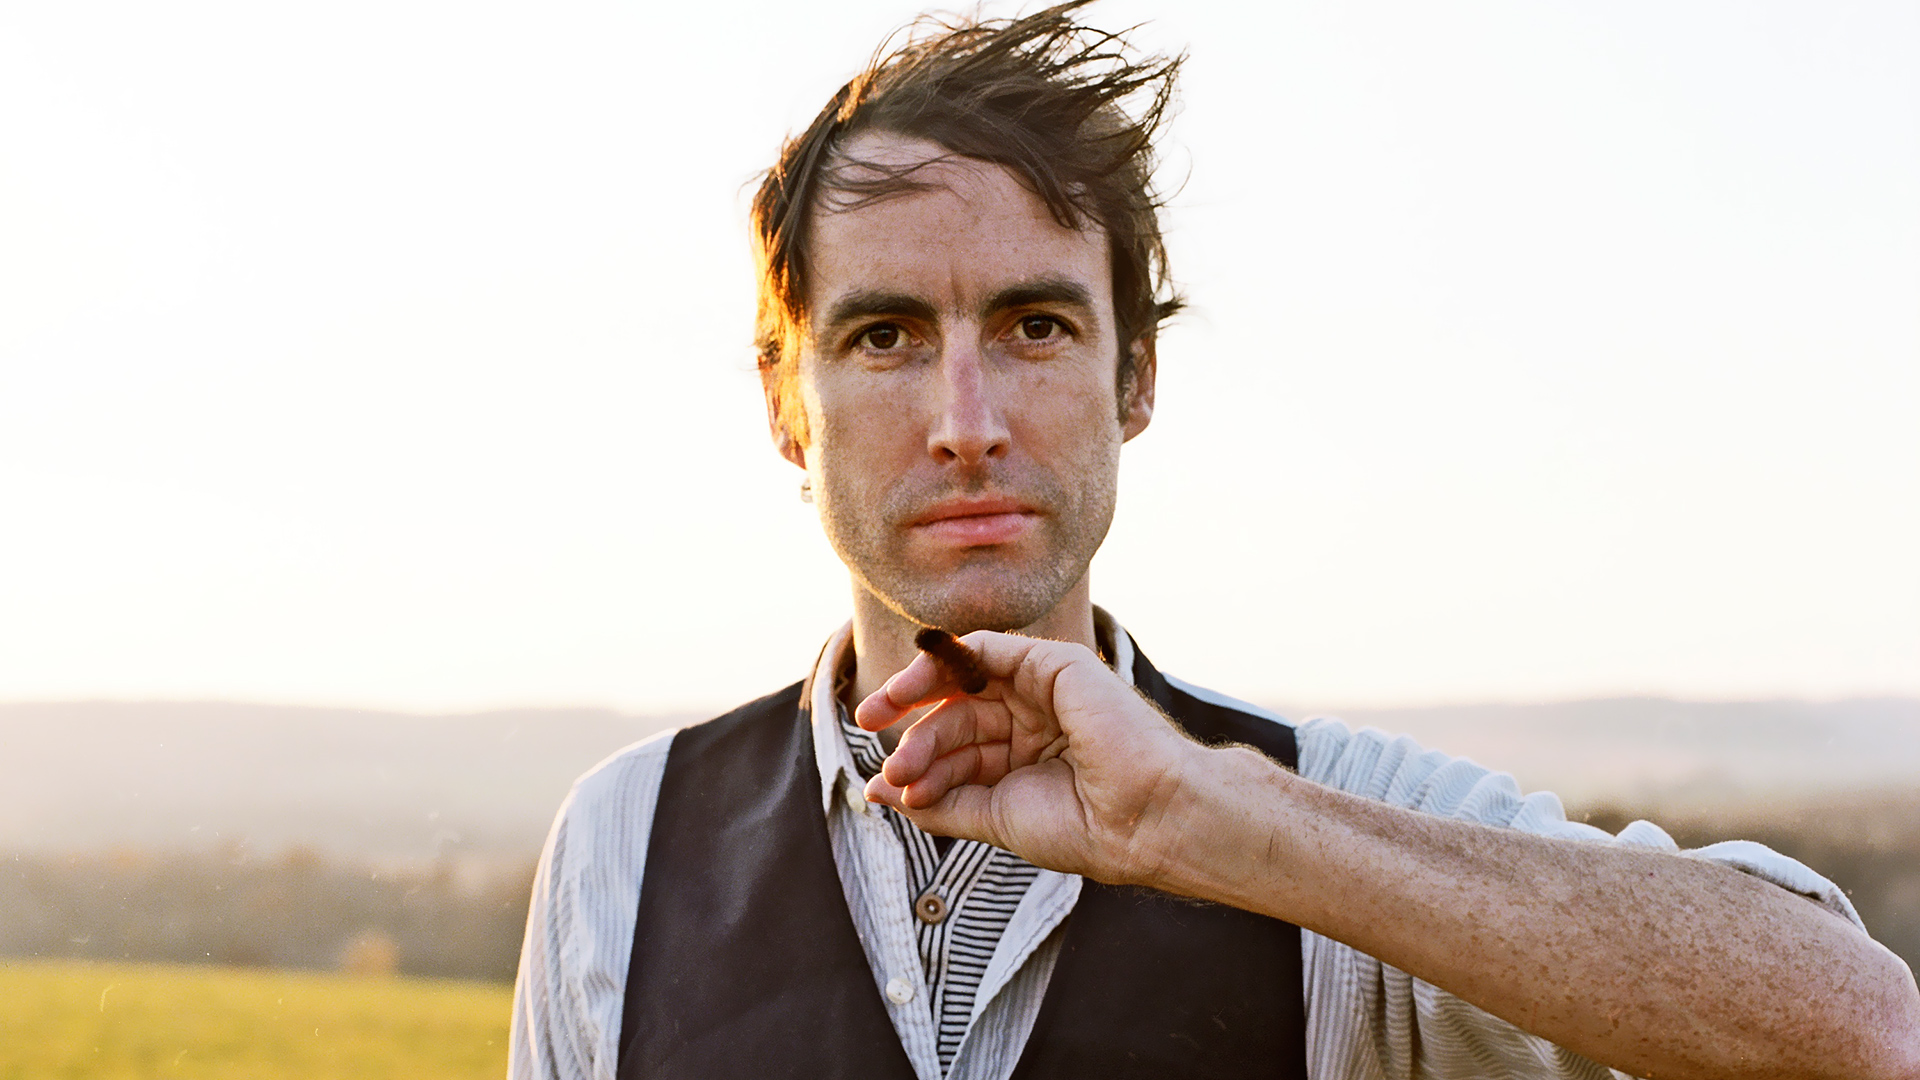 Andrew Bird Backgrounds, Compatible - PC, Mobile, Gadgets| 1920x1080 px